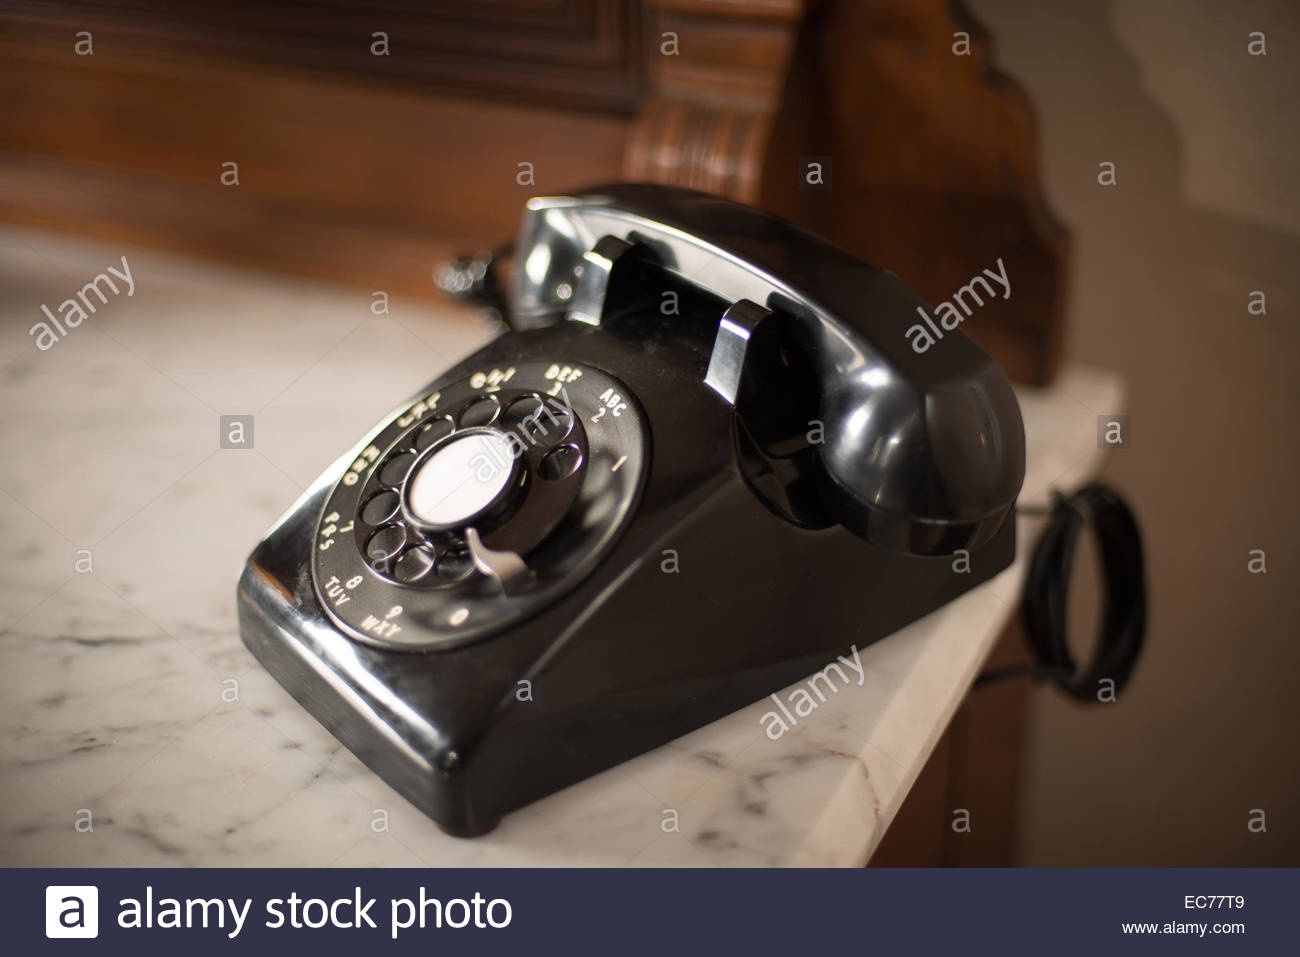 old style dial telephone sitting on a marble counter - Stock Image